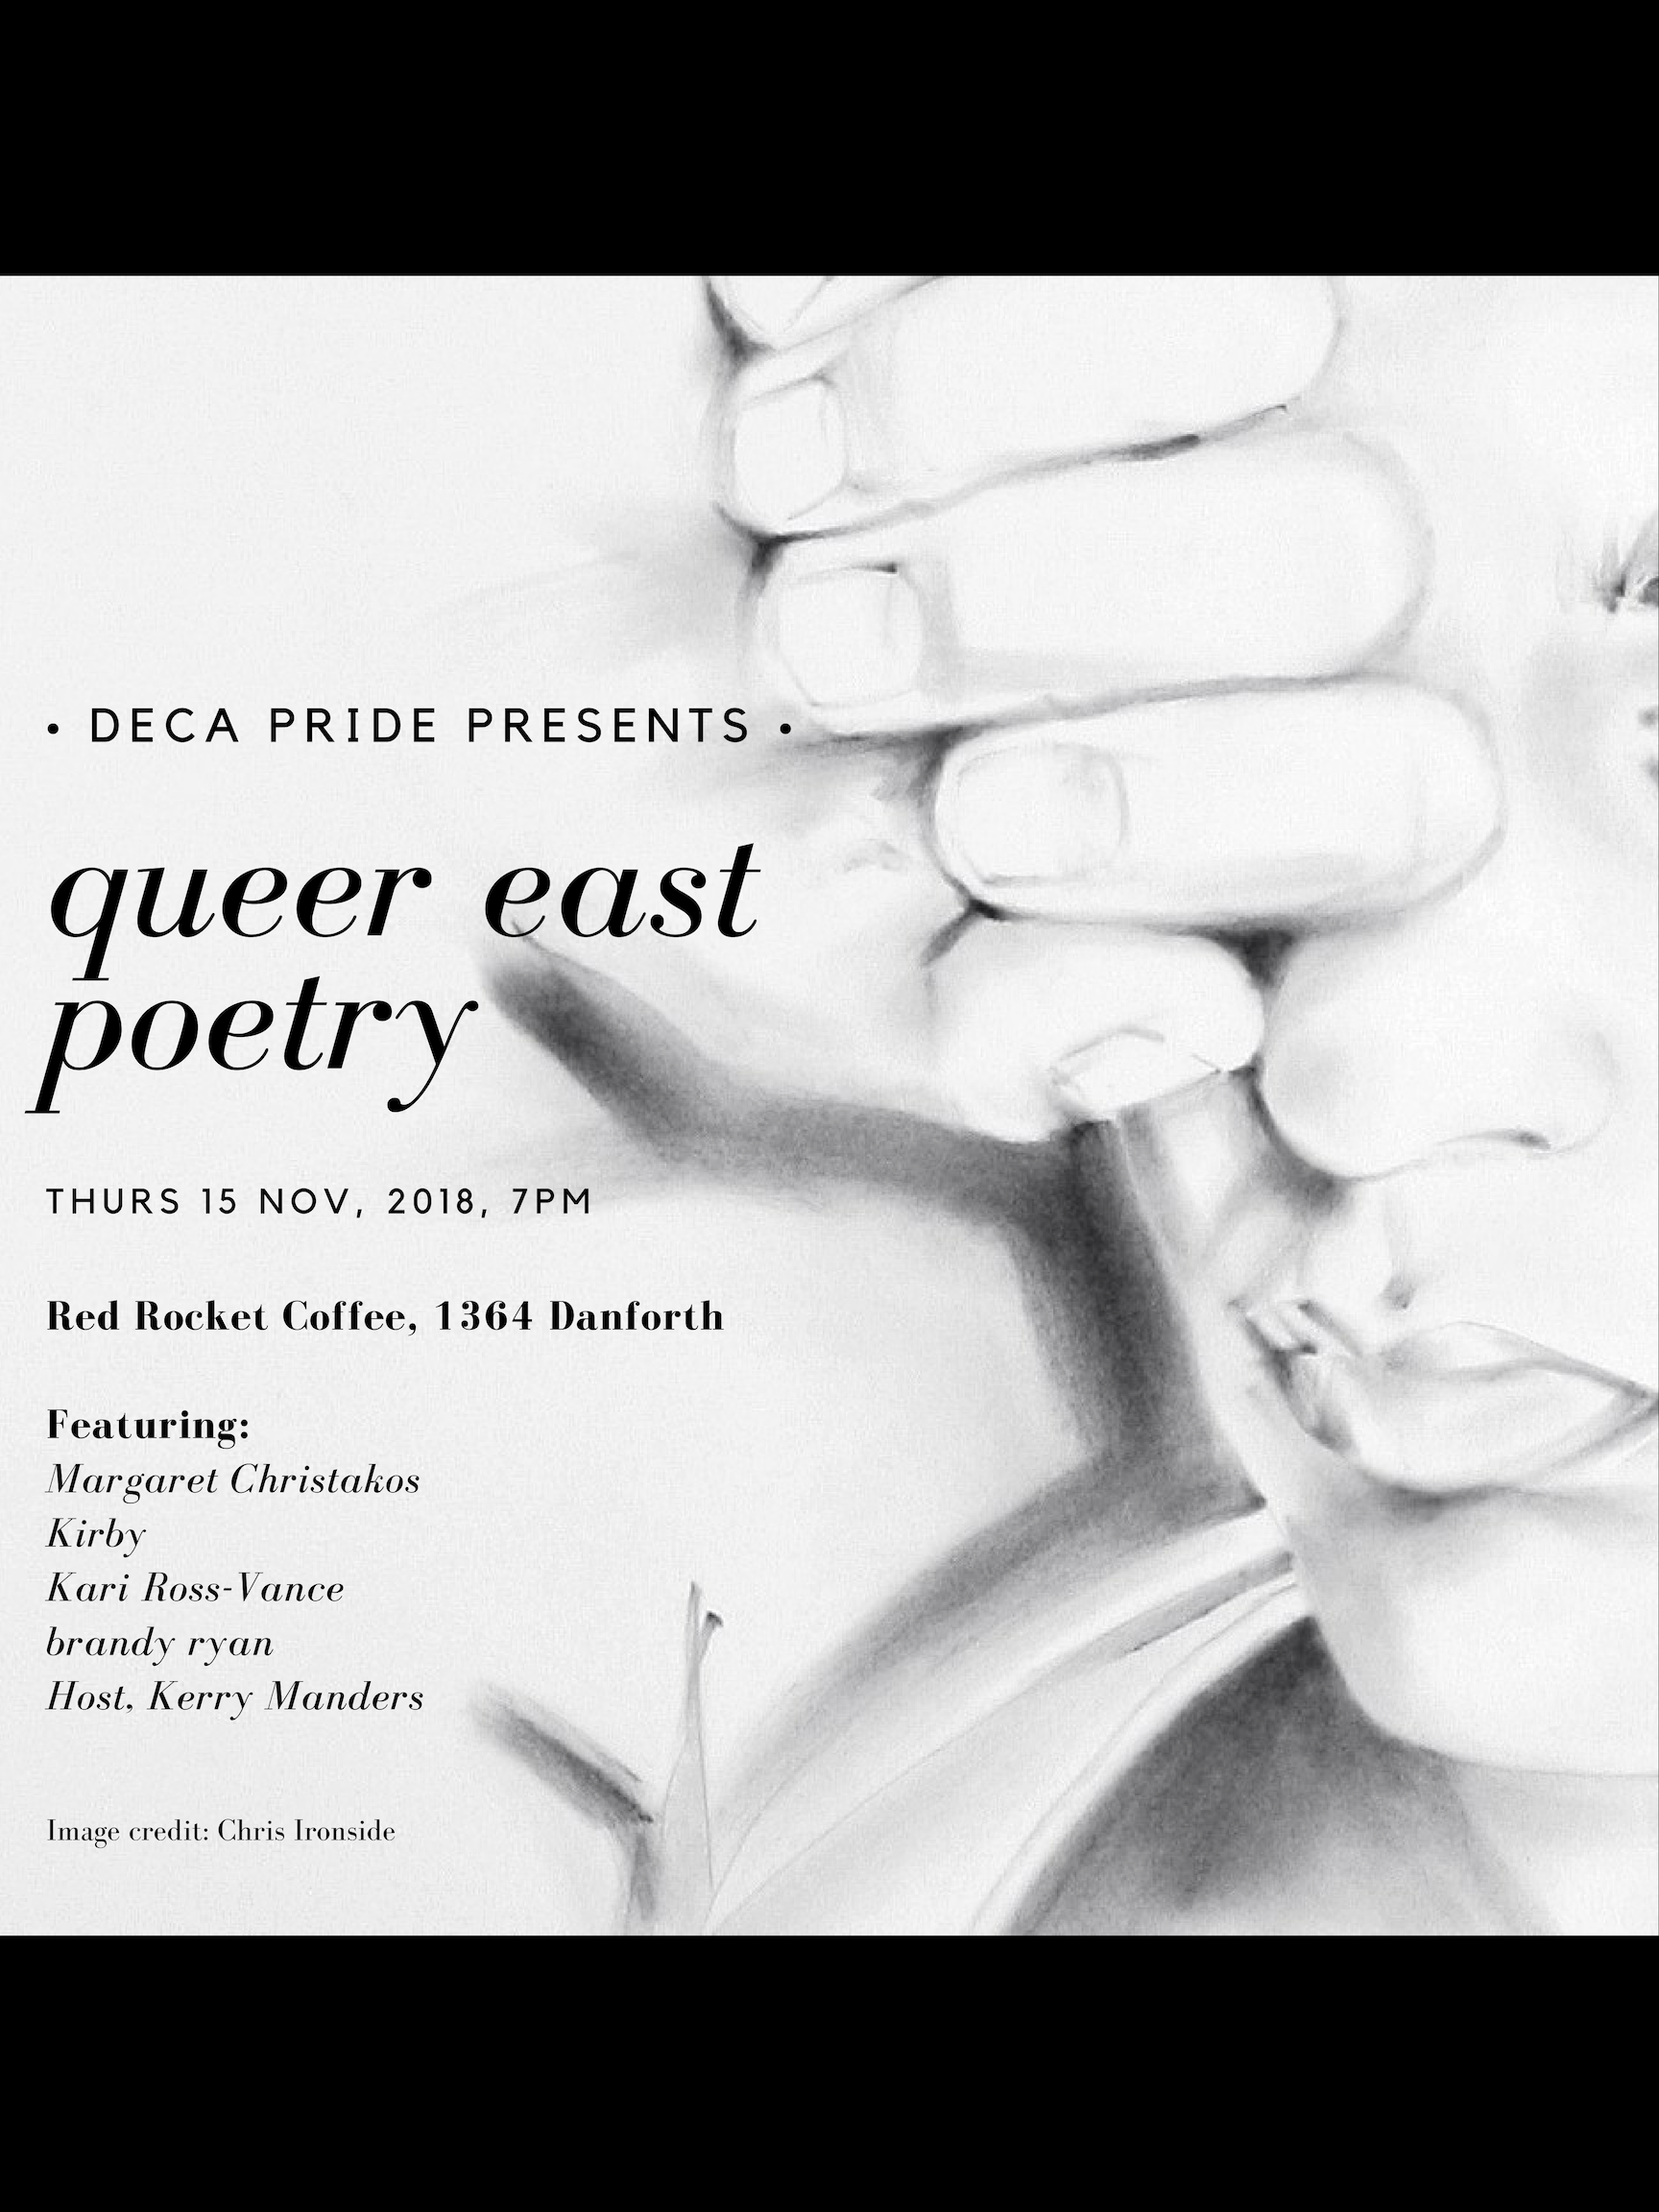 queer east poetry reading, poster (Nov. 2018)